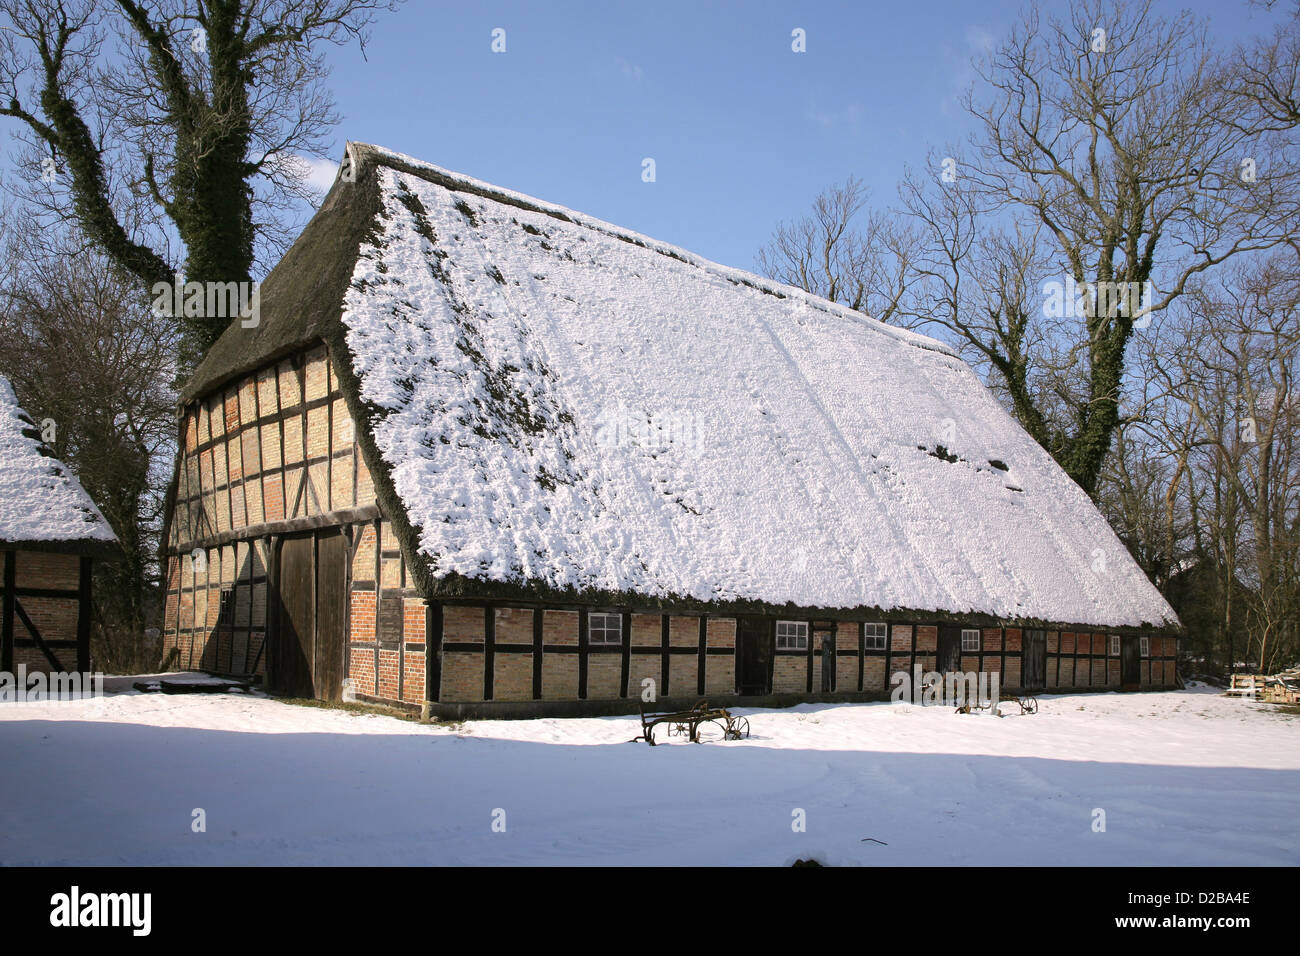 Damp Germany A Snowy Barn On The Property Damp Stock Photo